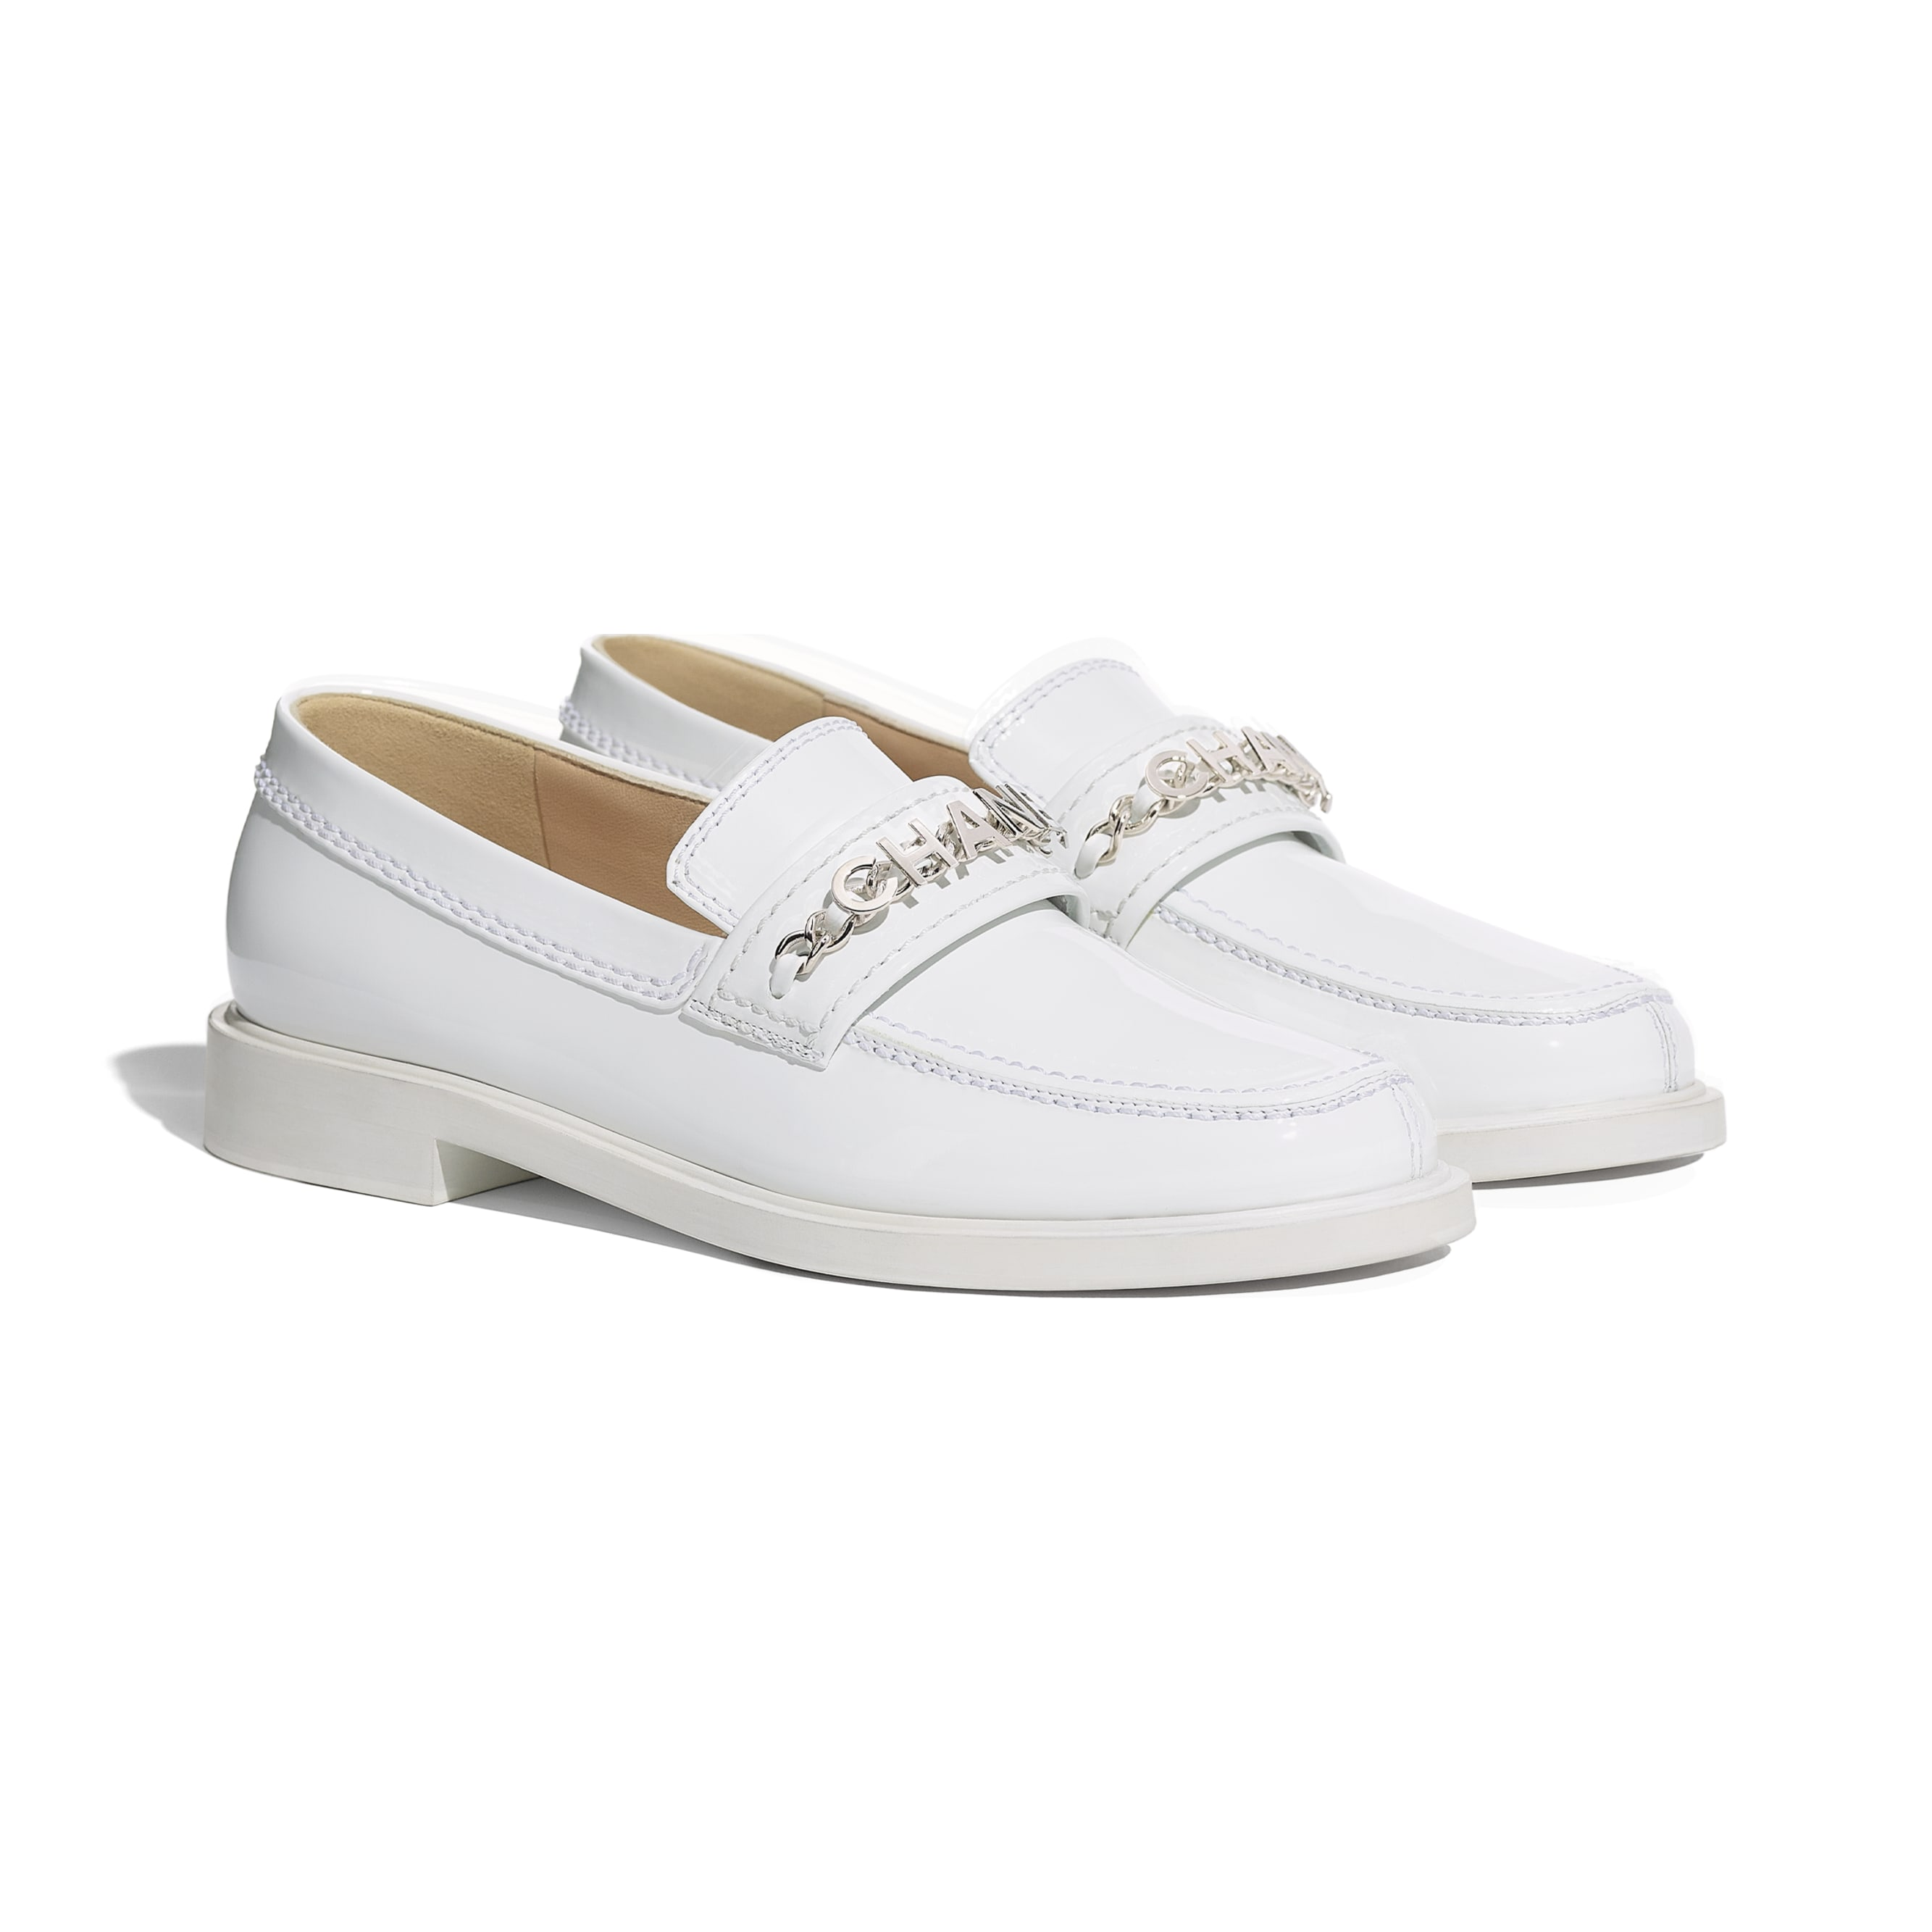 Loafers - White - Patent Calfskin - CHANEL - Alternative view - see standard sized version